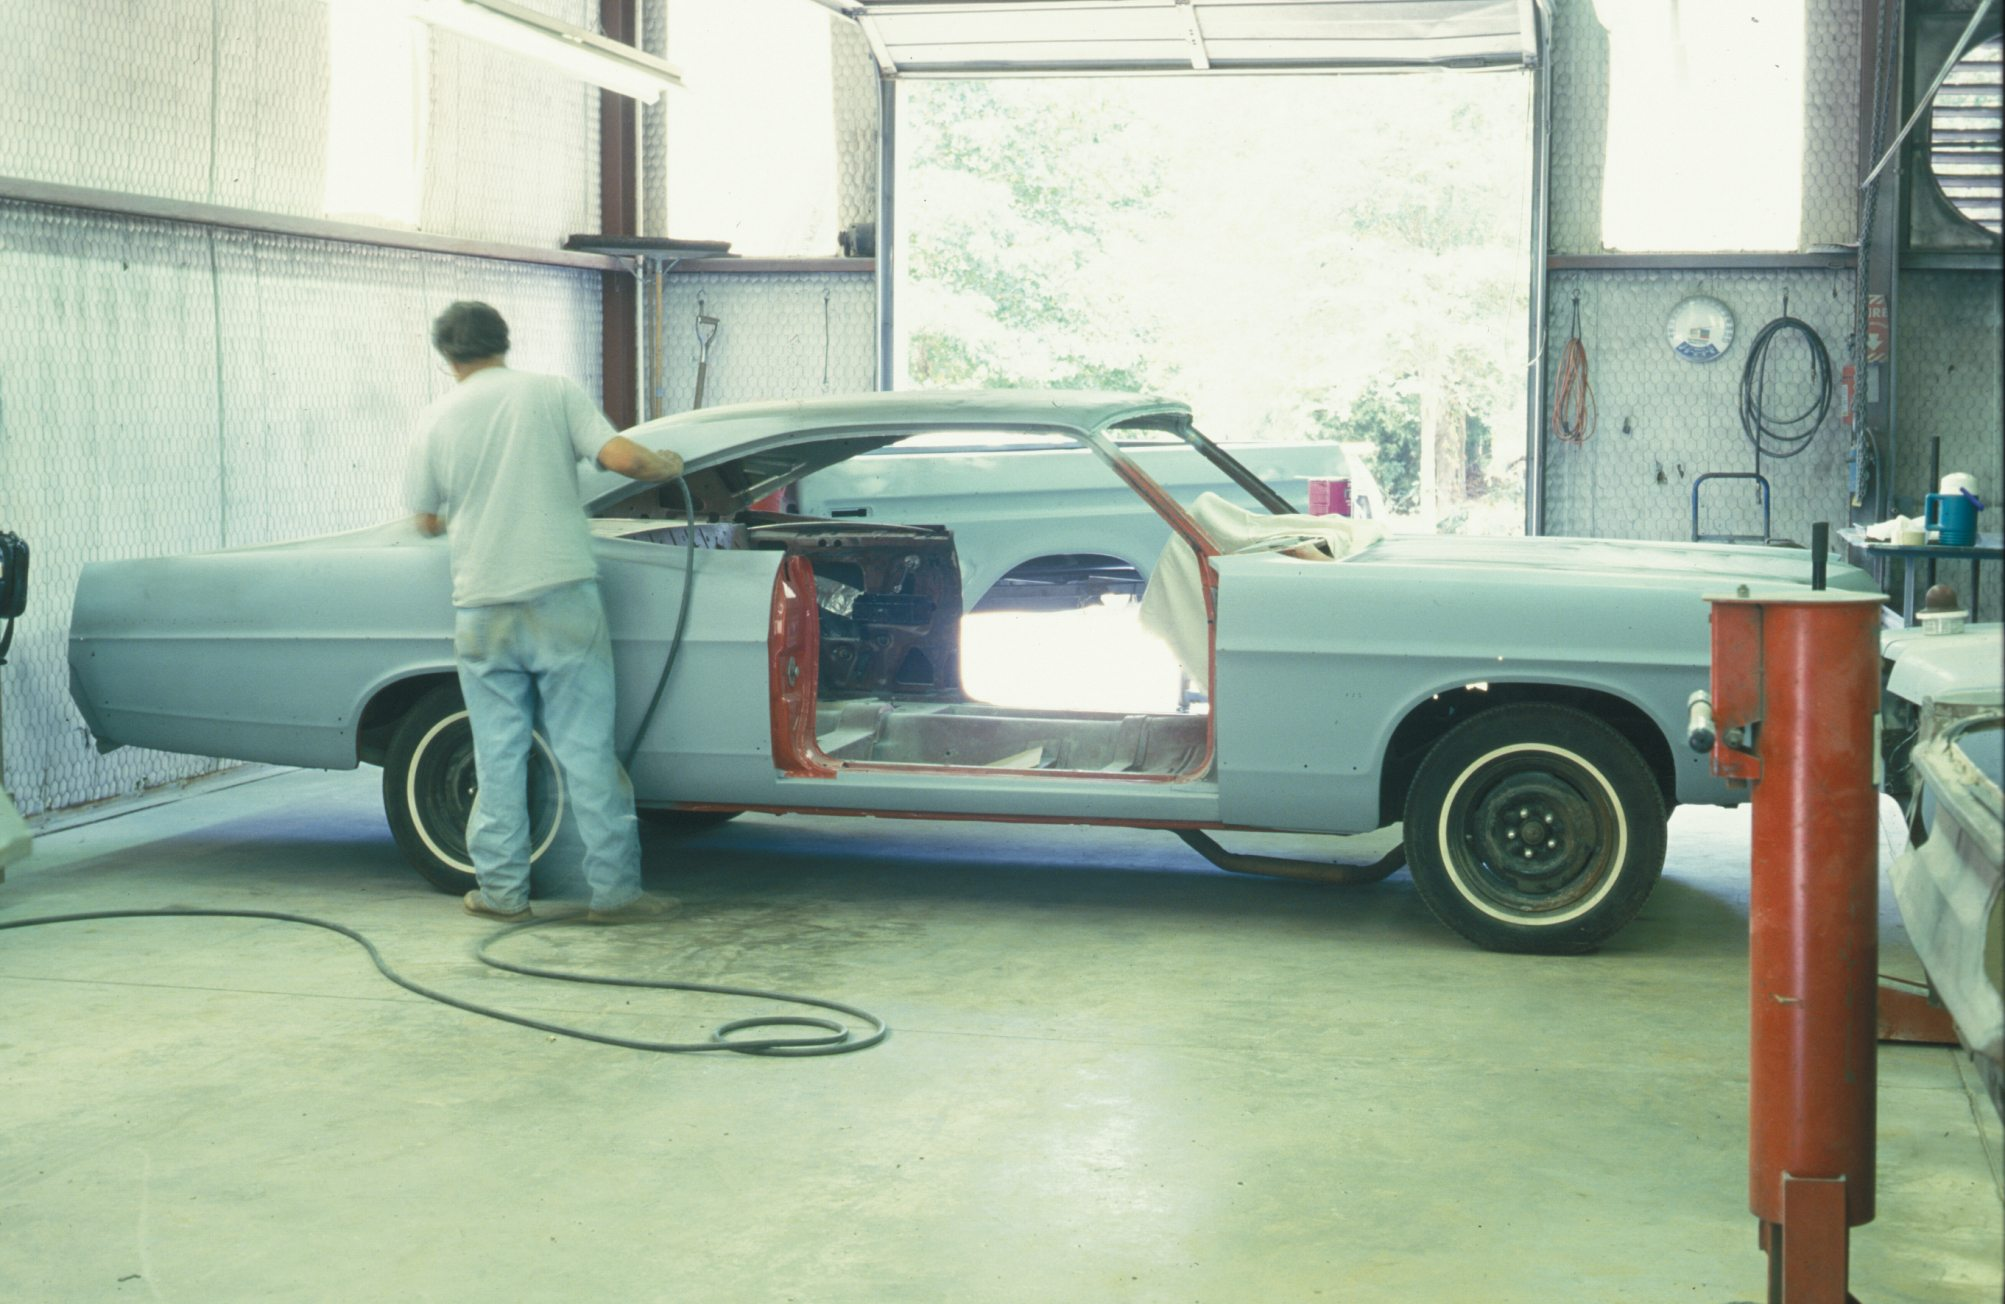 1967 Ford Galaxie 500 Restoration